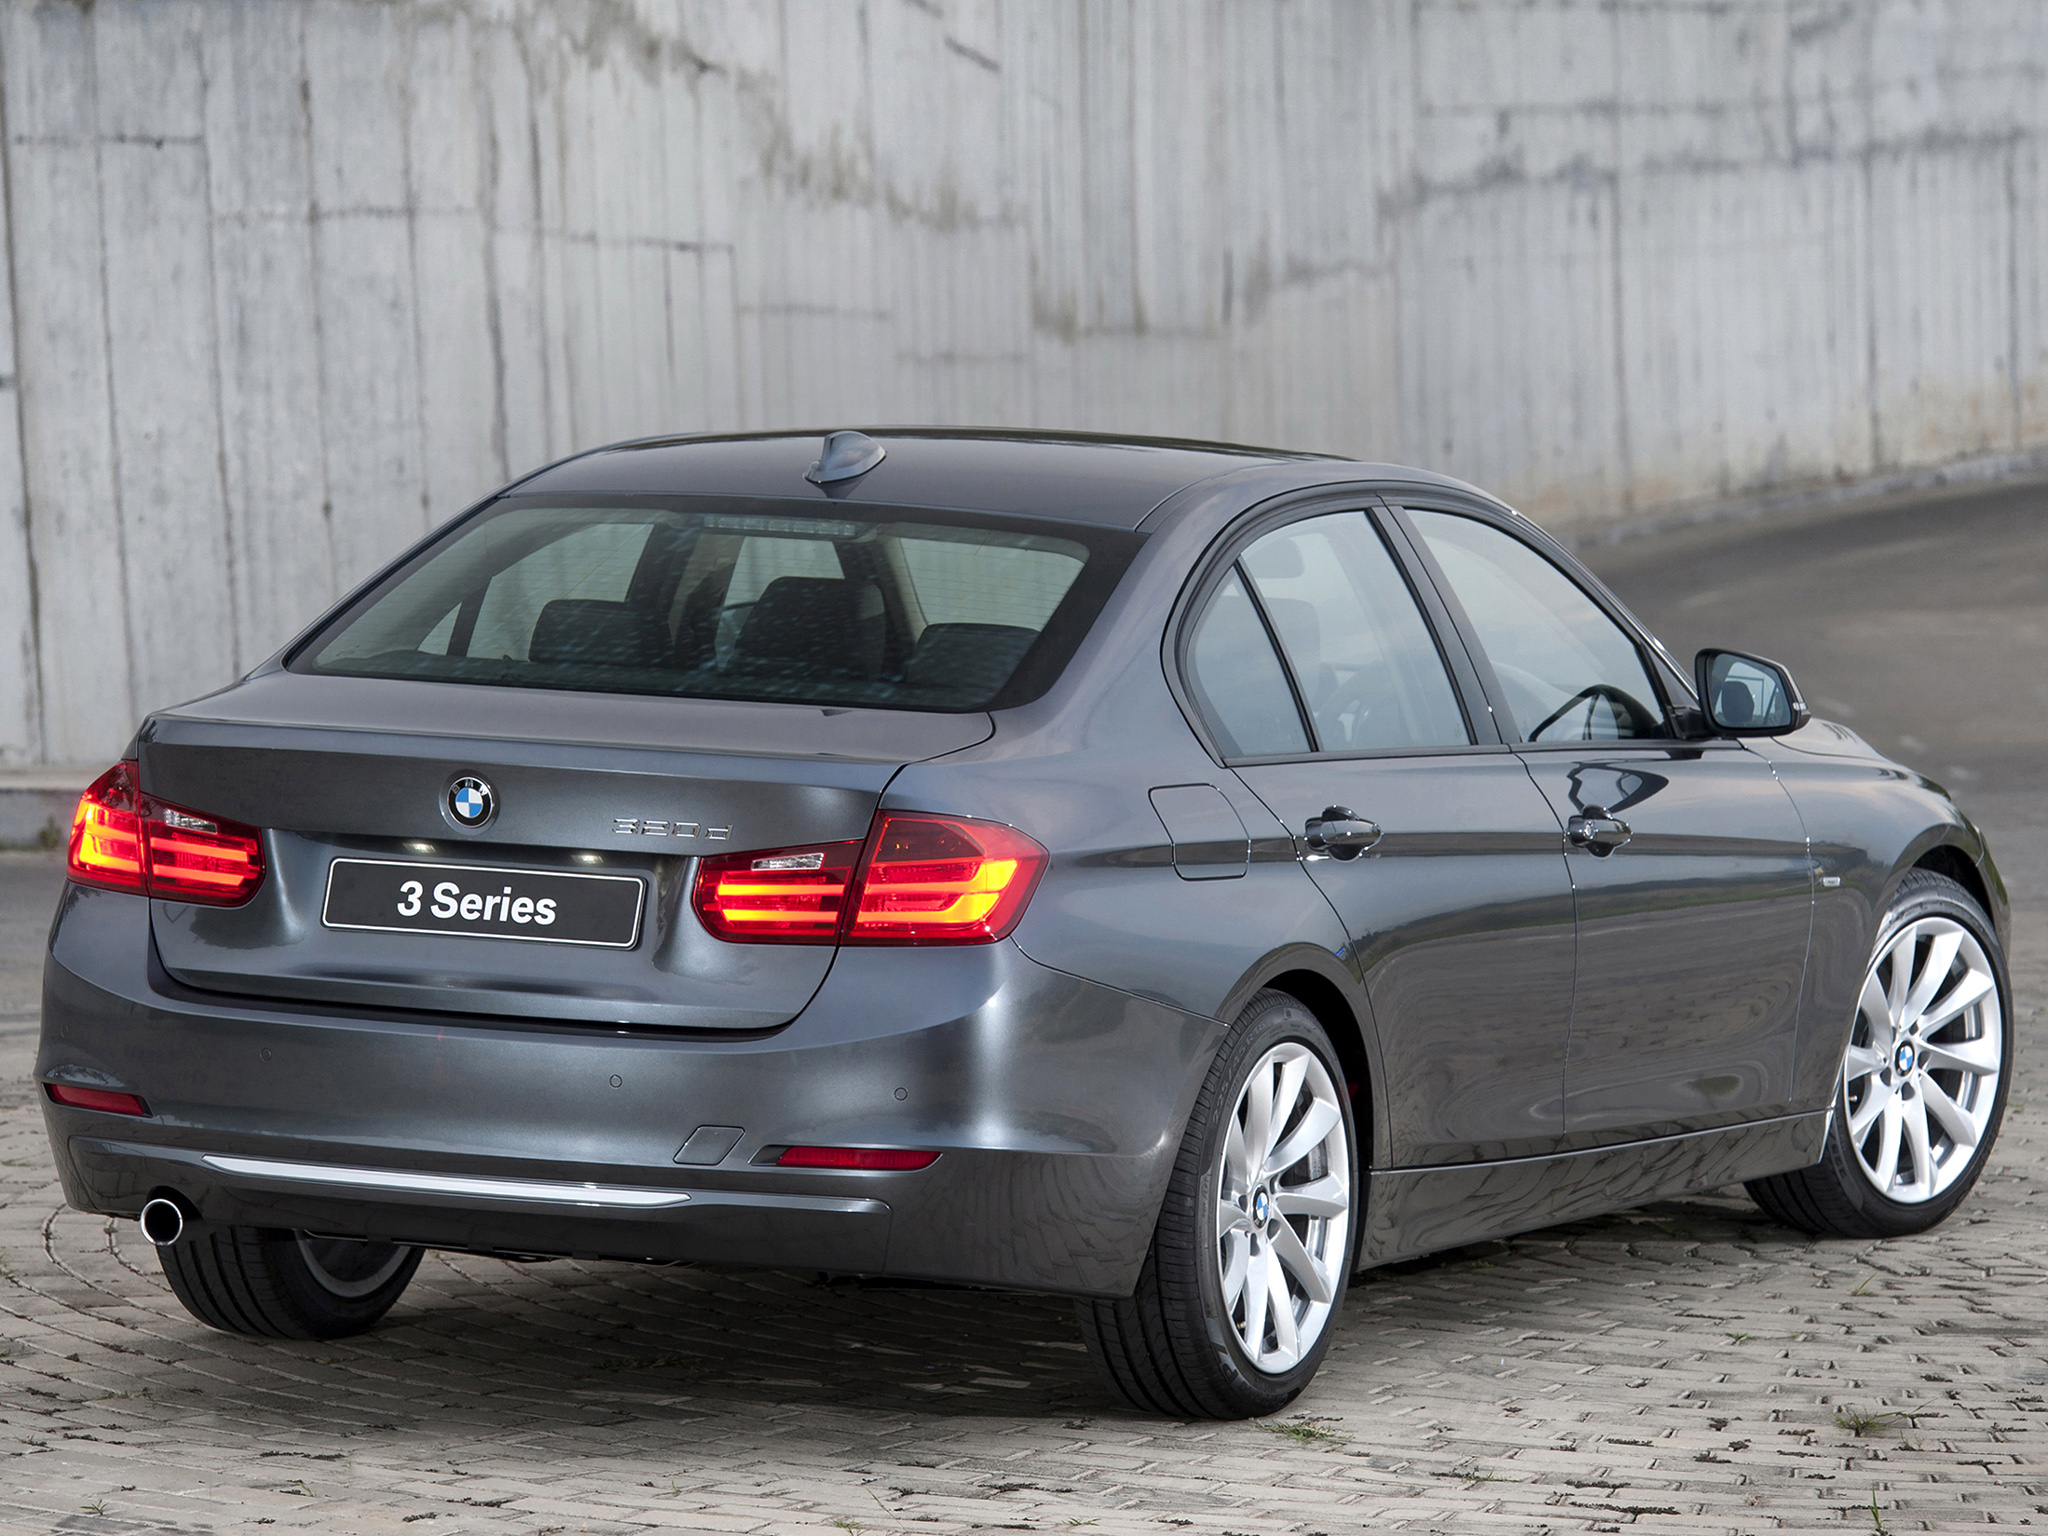 BMW Series F Photos Photo Gallery Page CarsBasecom - Bmw 3 series f30